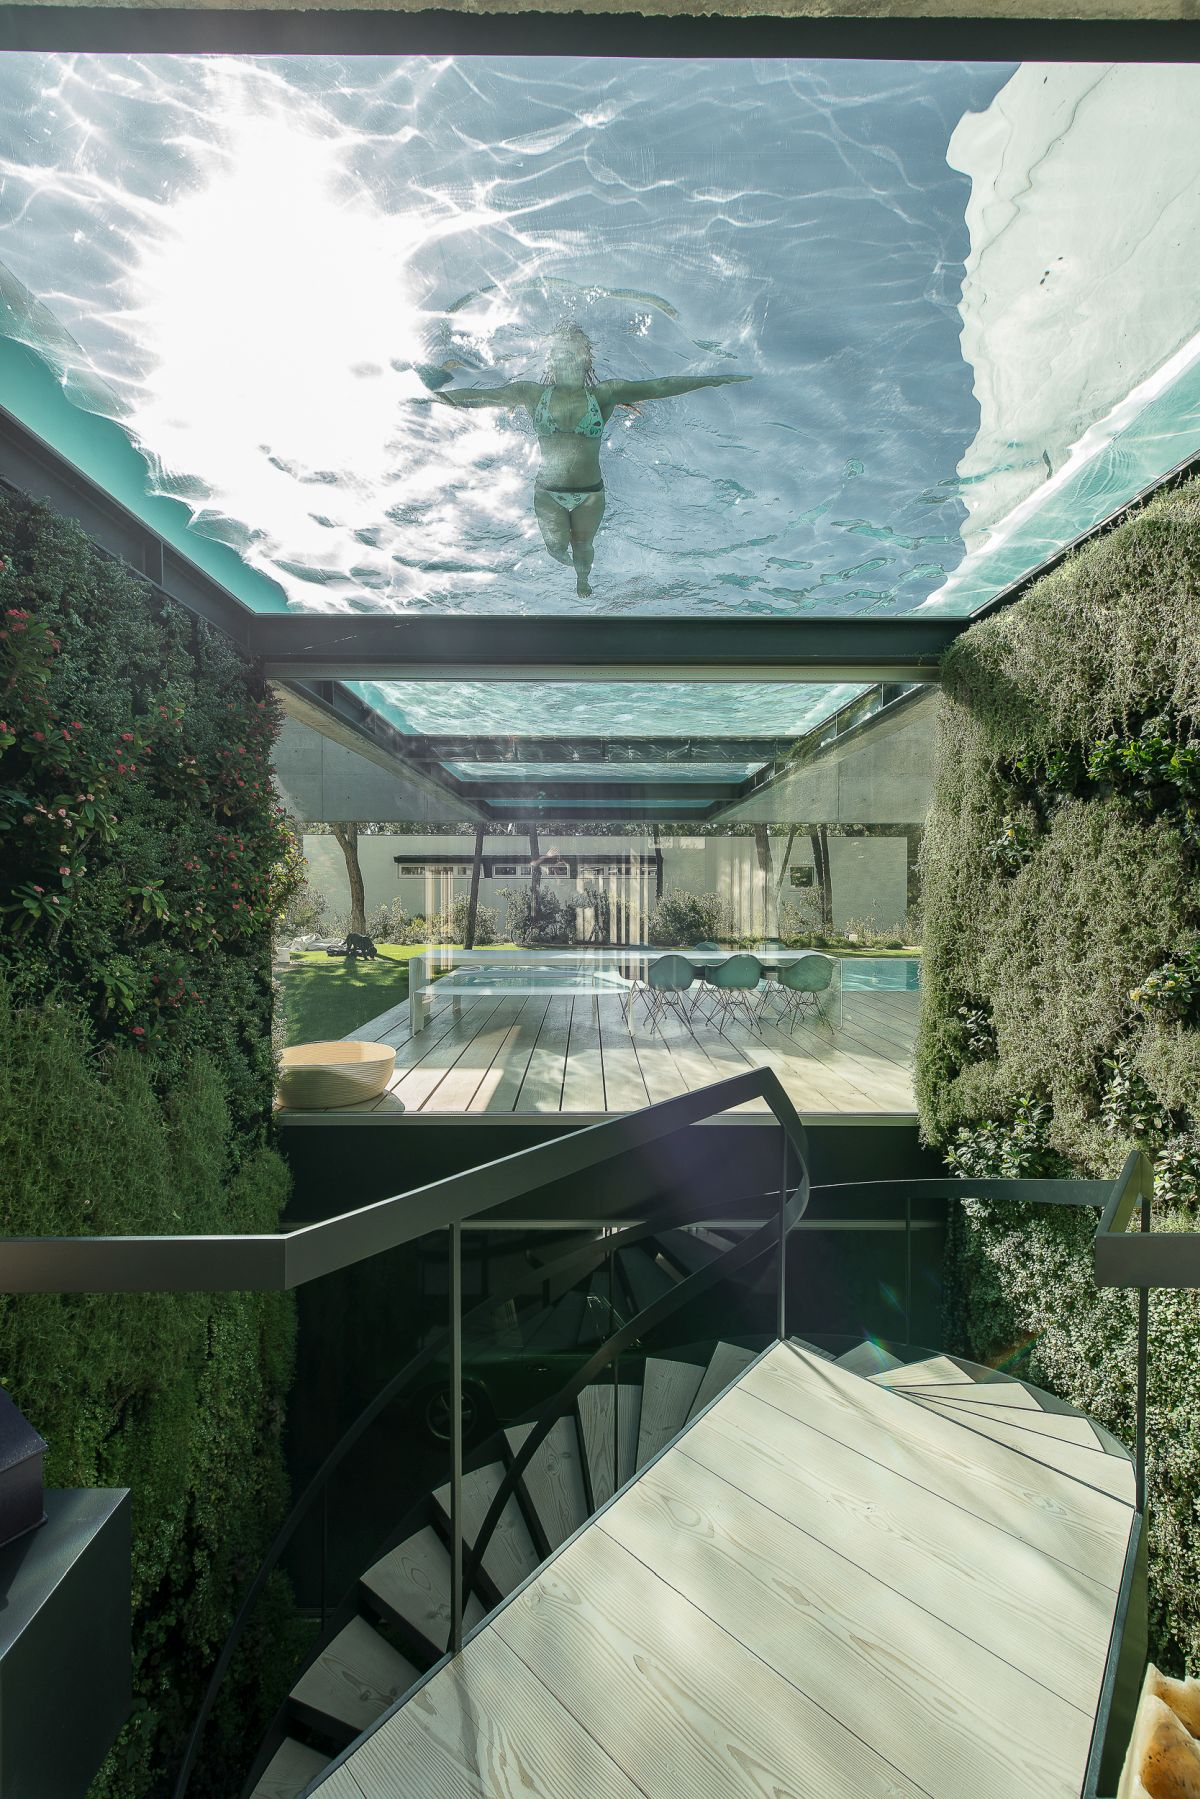 The stairway has a wonderful close-up view of the upper pool.